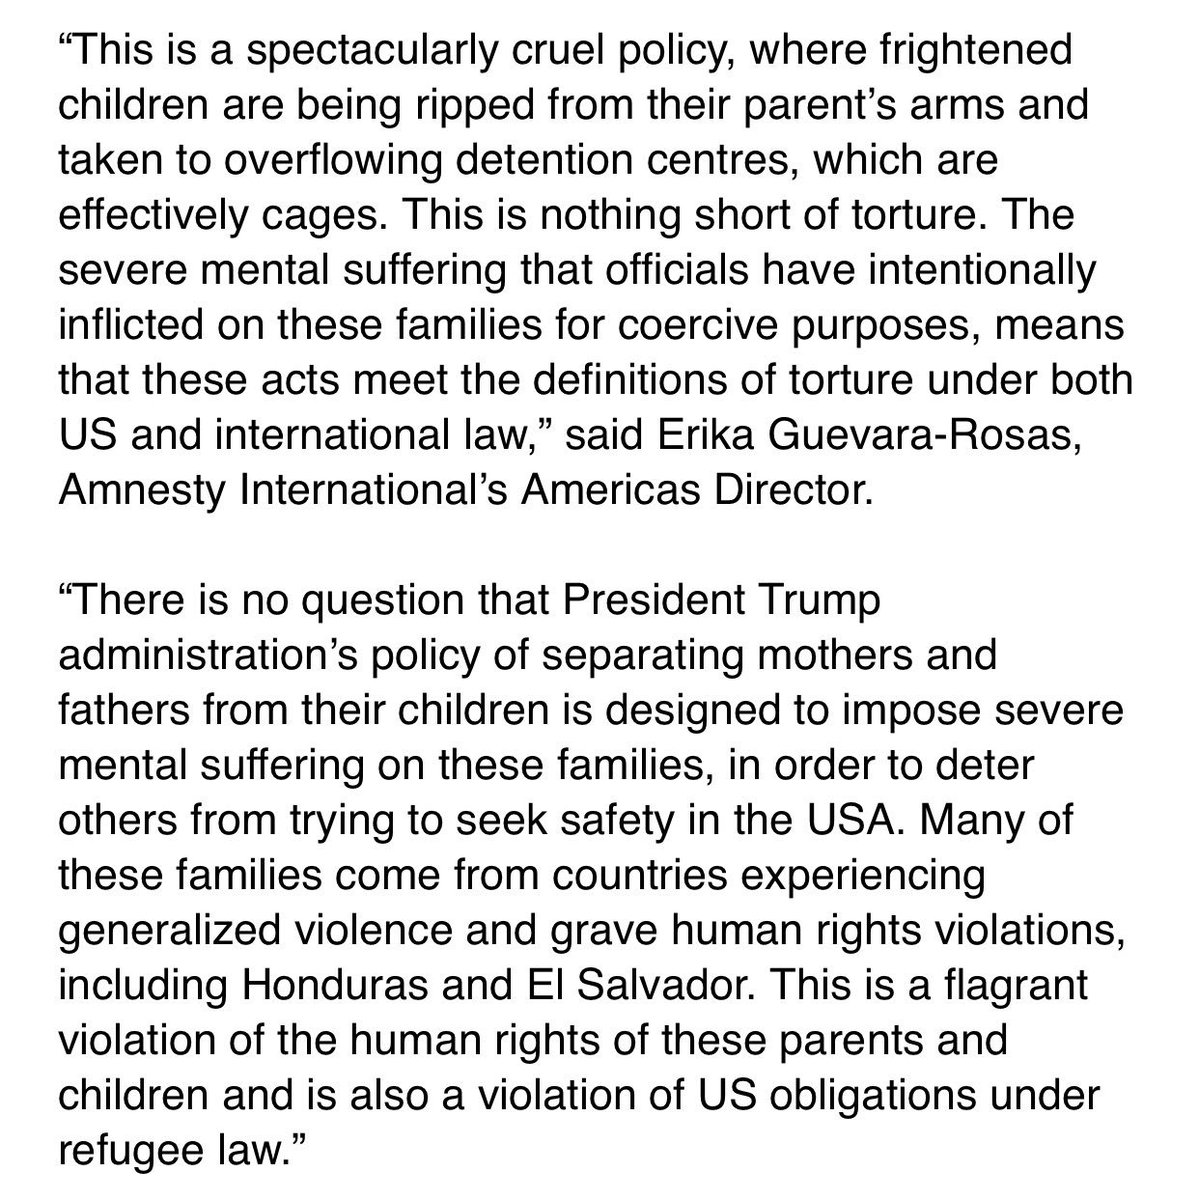 """New Amnesty International statement pulls no punches on Trump's family separations, calls it """"nothing short of torture"""""""